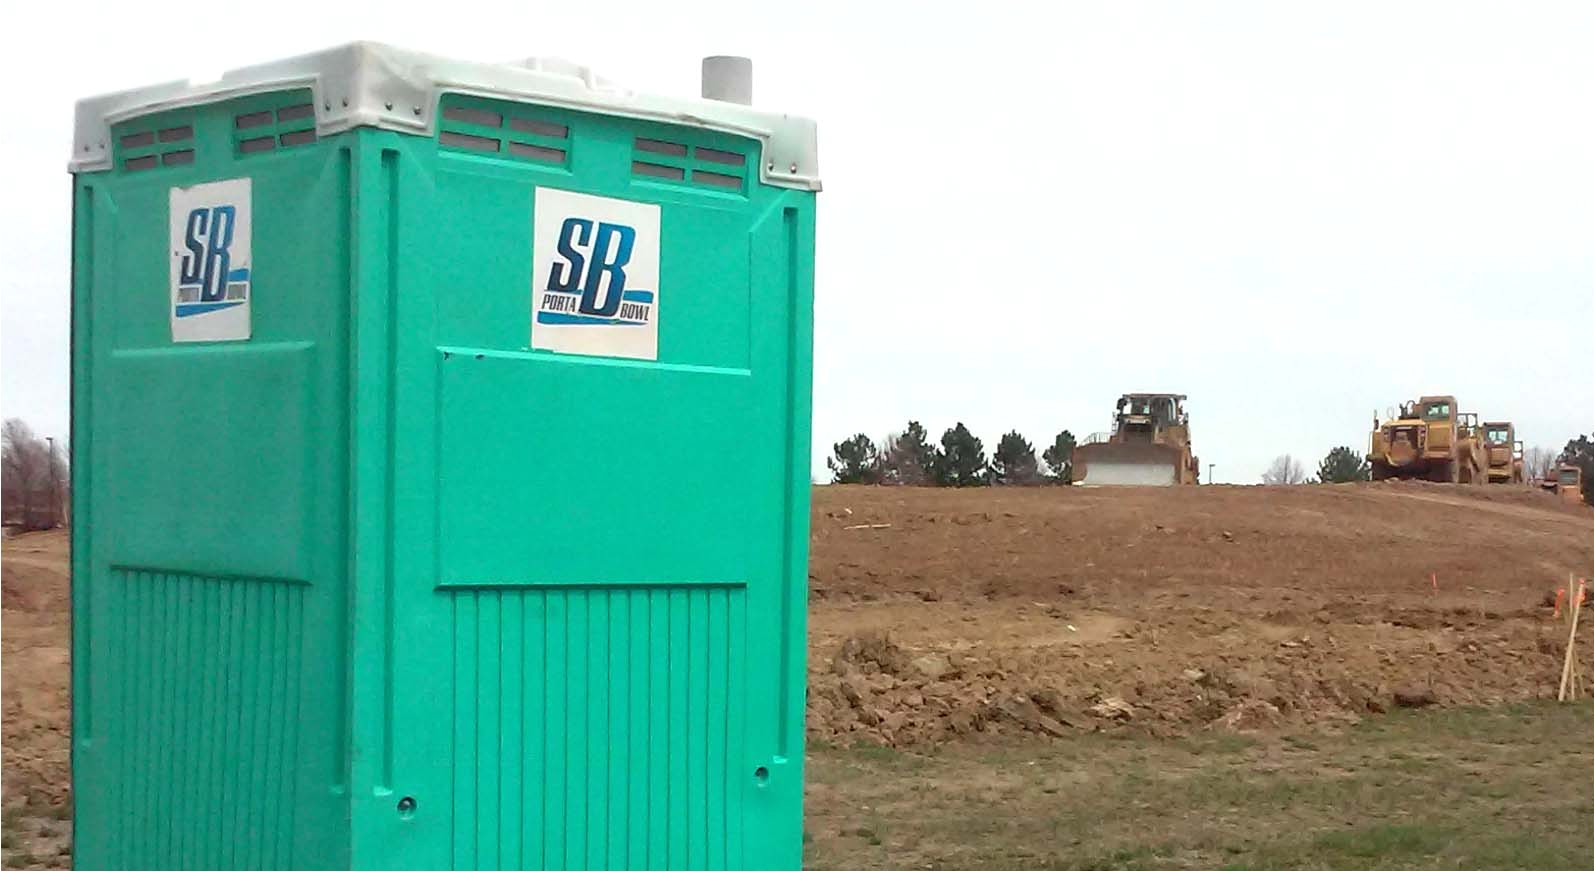 s b porta bowl offers portable restrooms and porta potty rentals for summer events and construction sites 815075